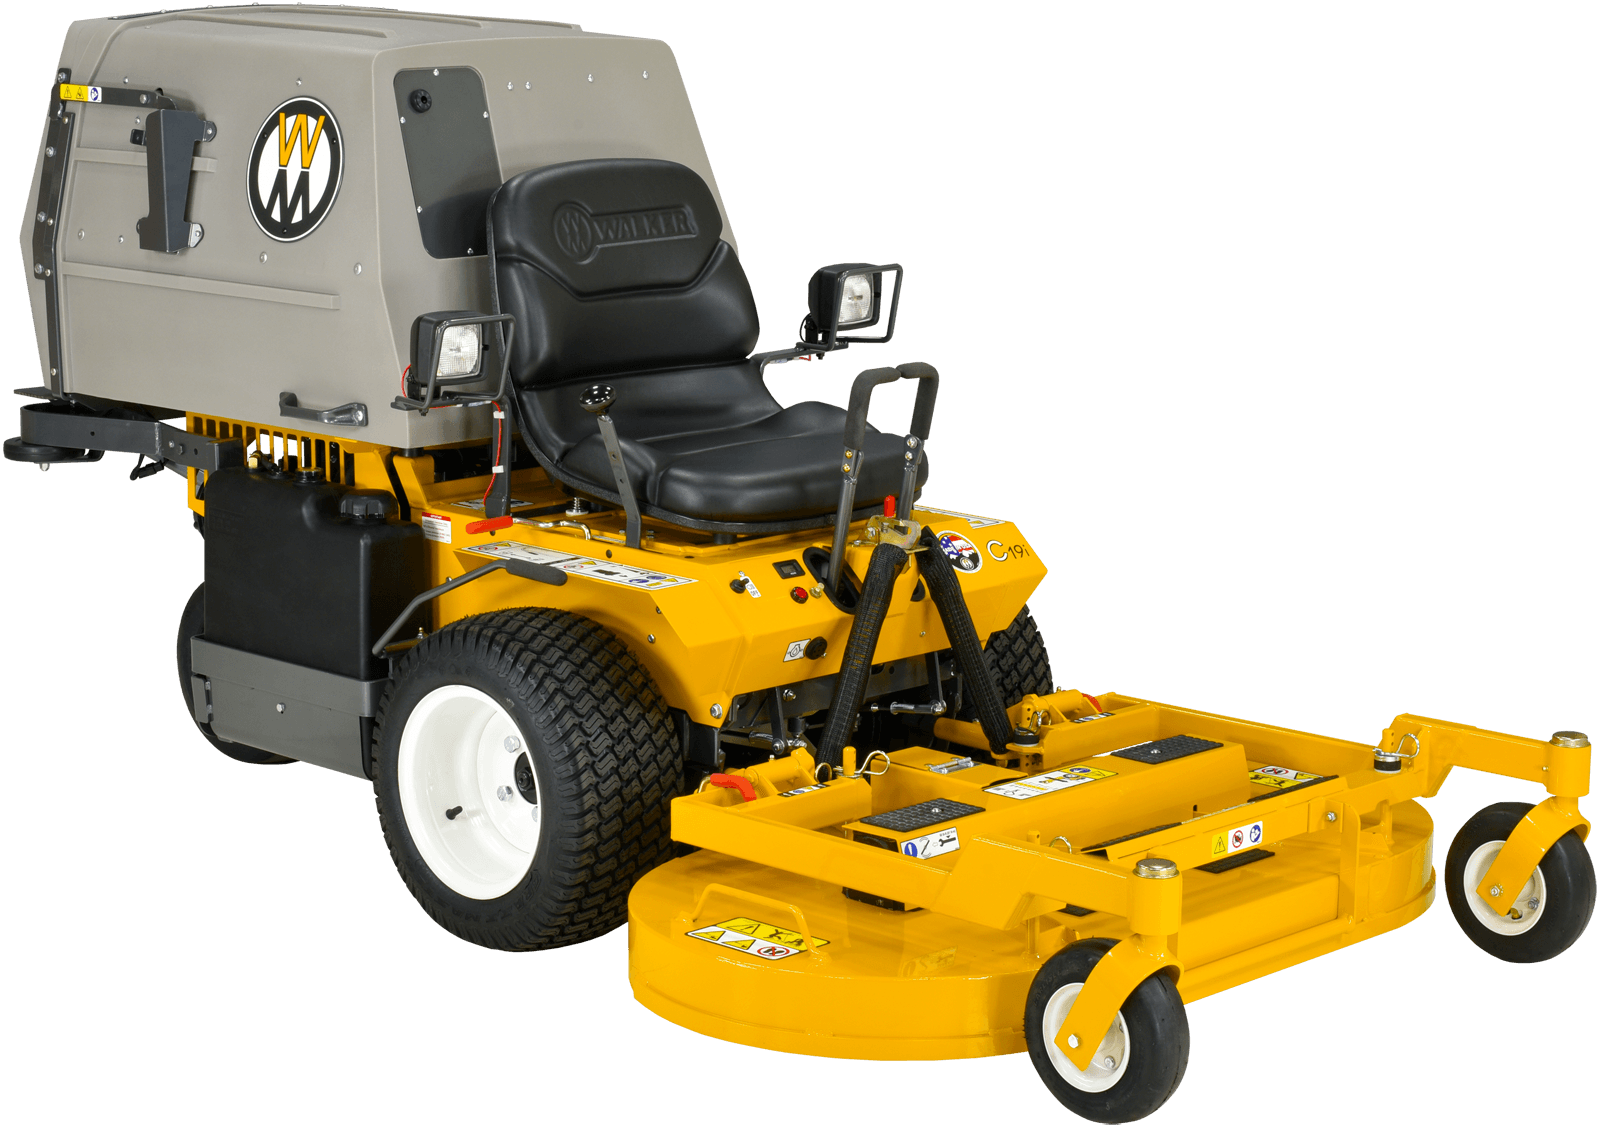 lawn mower e39 engine diagram walker free image for